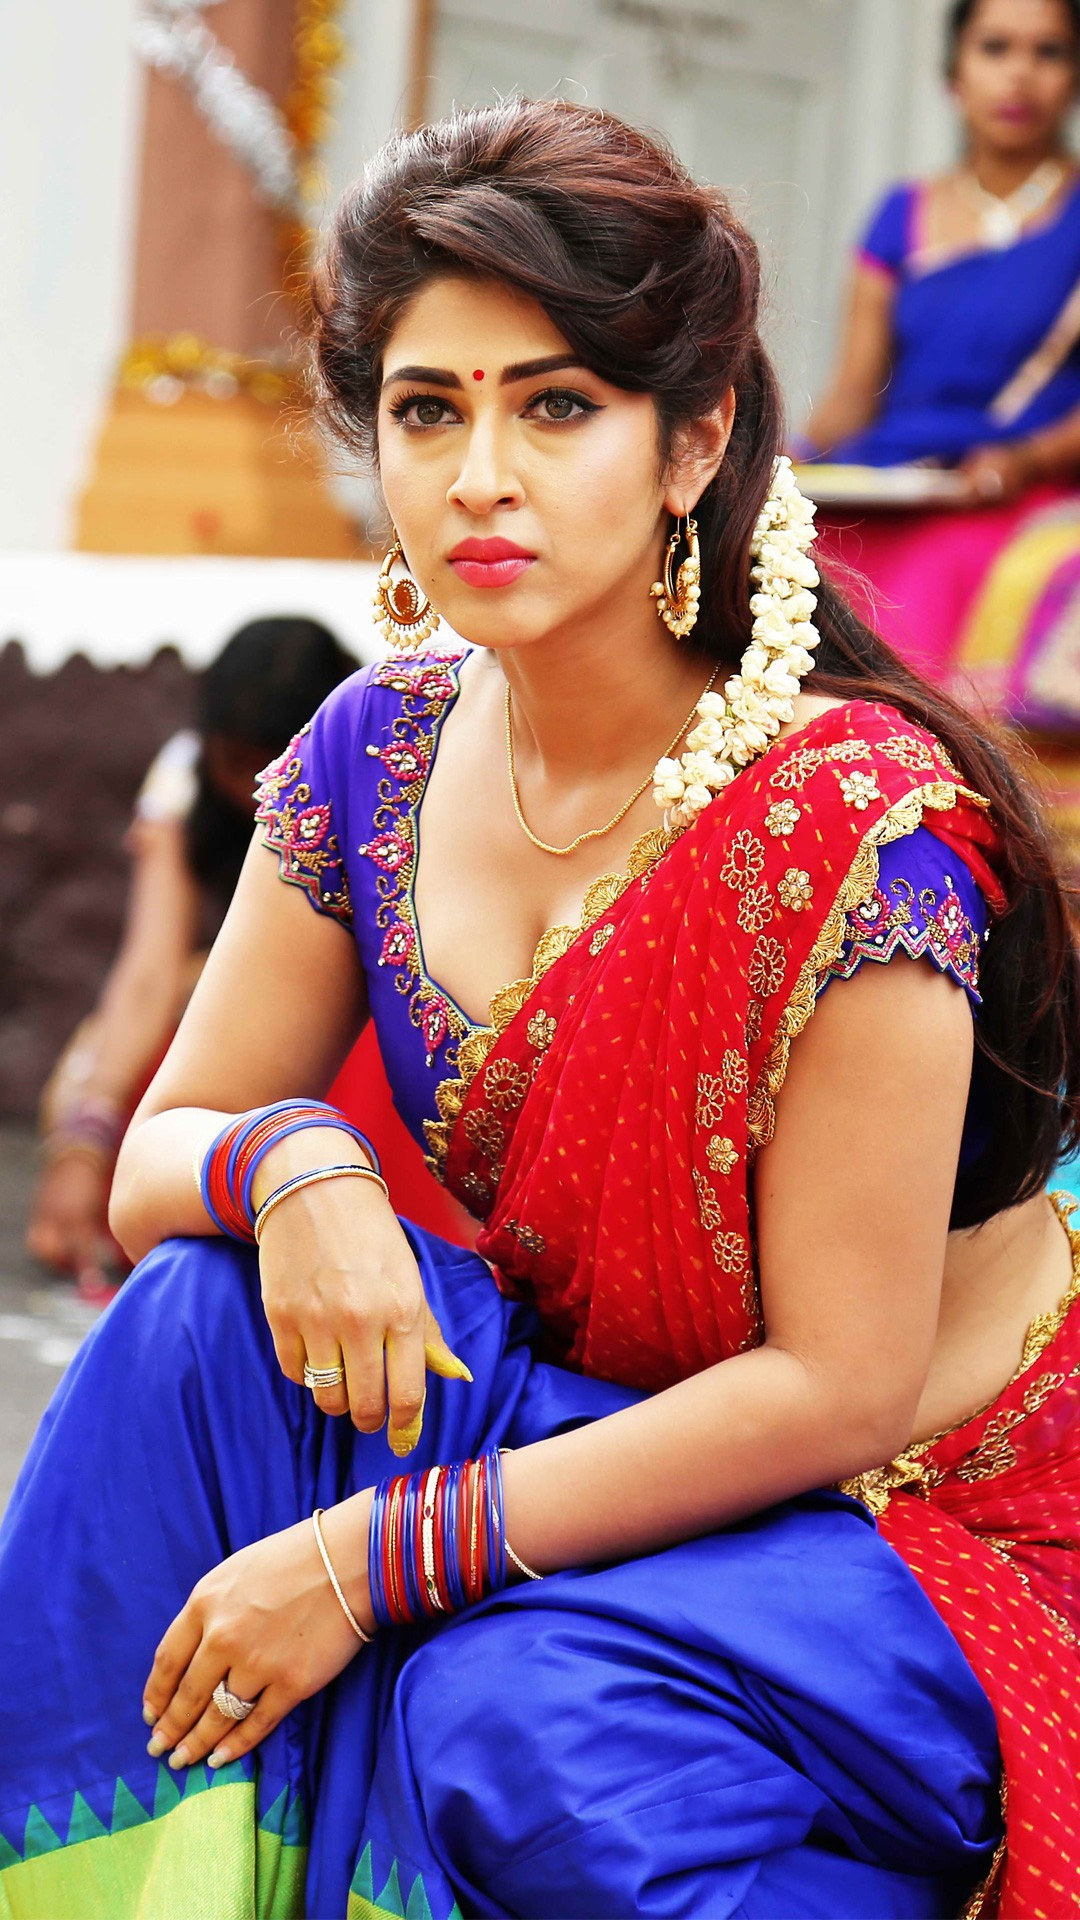 Iphone 5s Home Screen Wallpaper Sonarika Bhadoria In Saree Wallpapers Hd Wallpapers Id